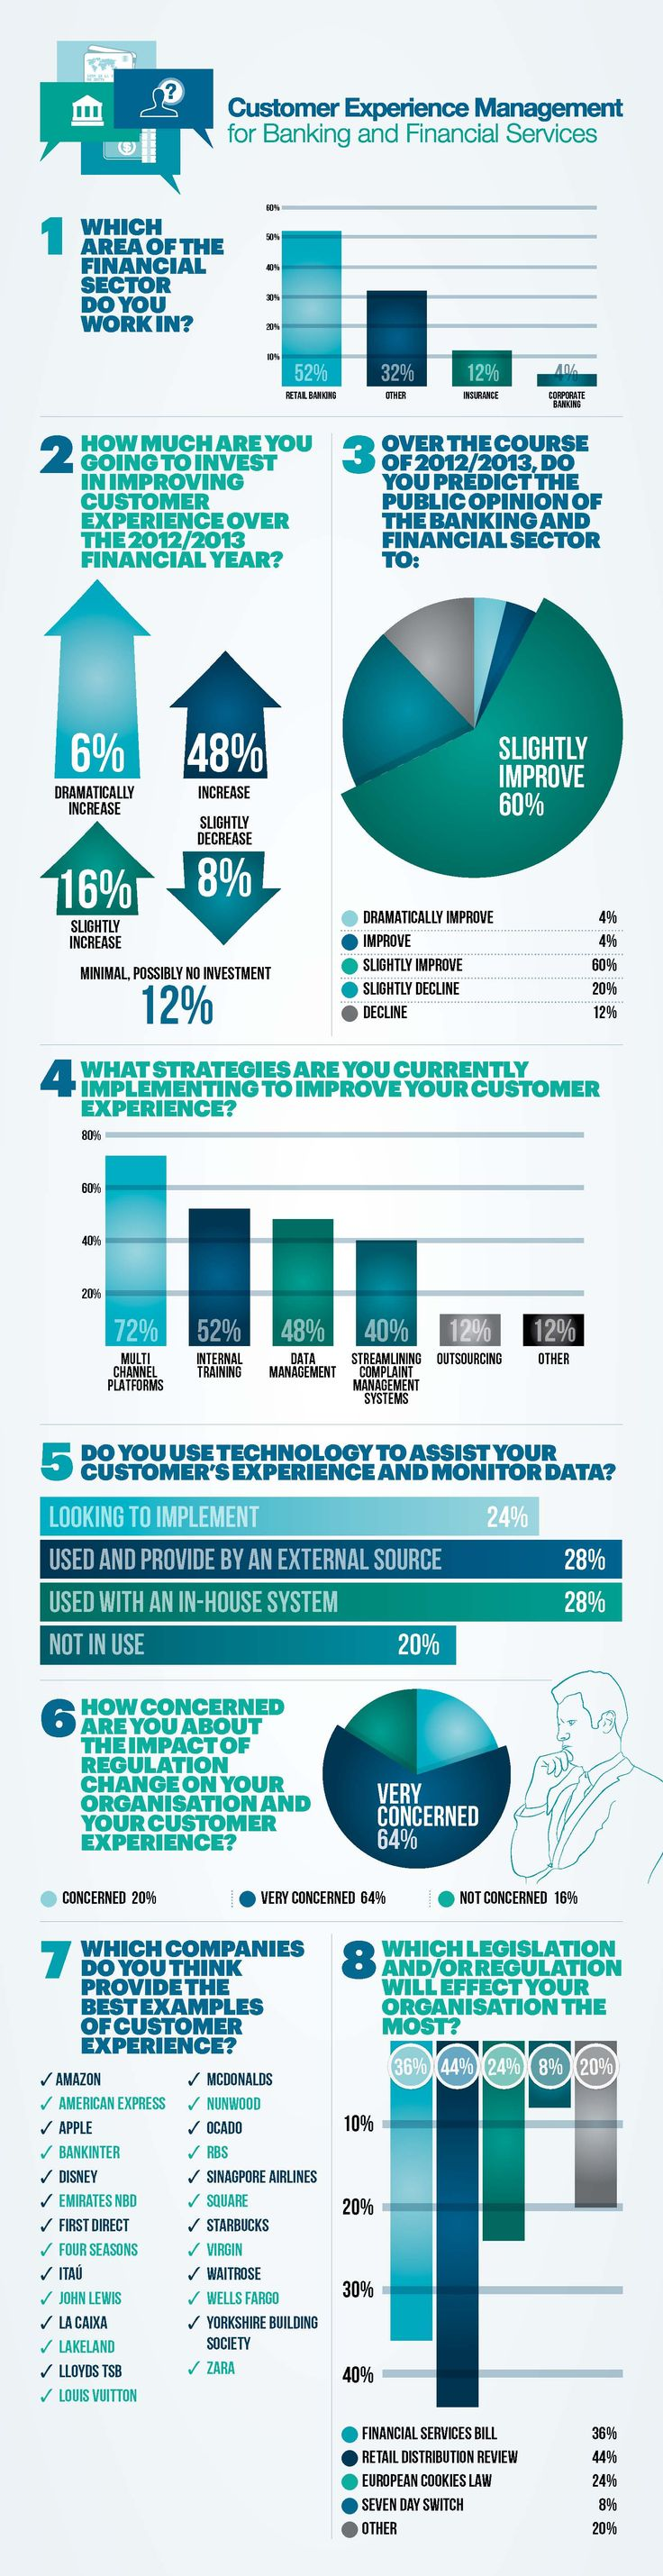 Customer Experience Management for Banking and Financial Services. If there were ever an industry prone to unique, intricate customer experience challenges, it is the financial services sector. This infographic, based on exclusive research by Customer Management IQ and the Customer Experience Management